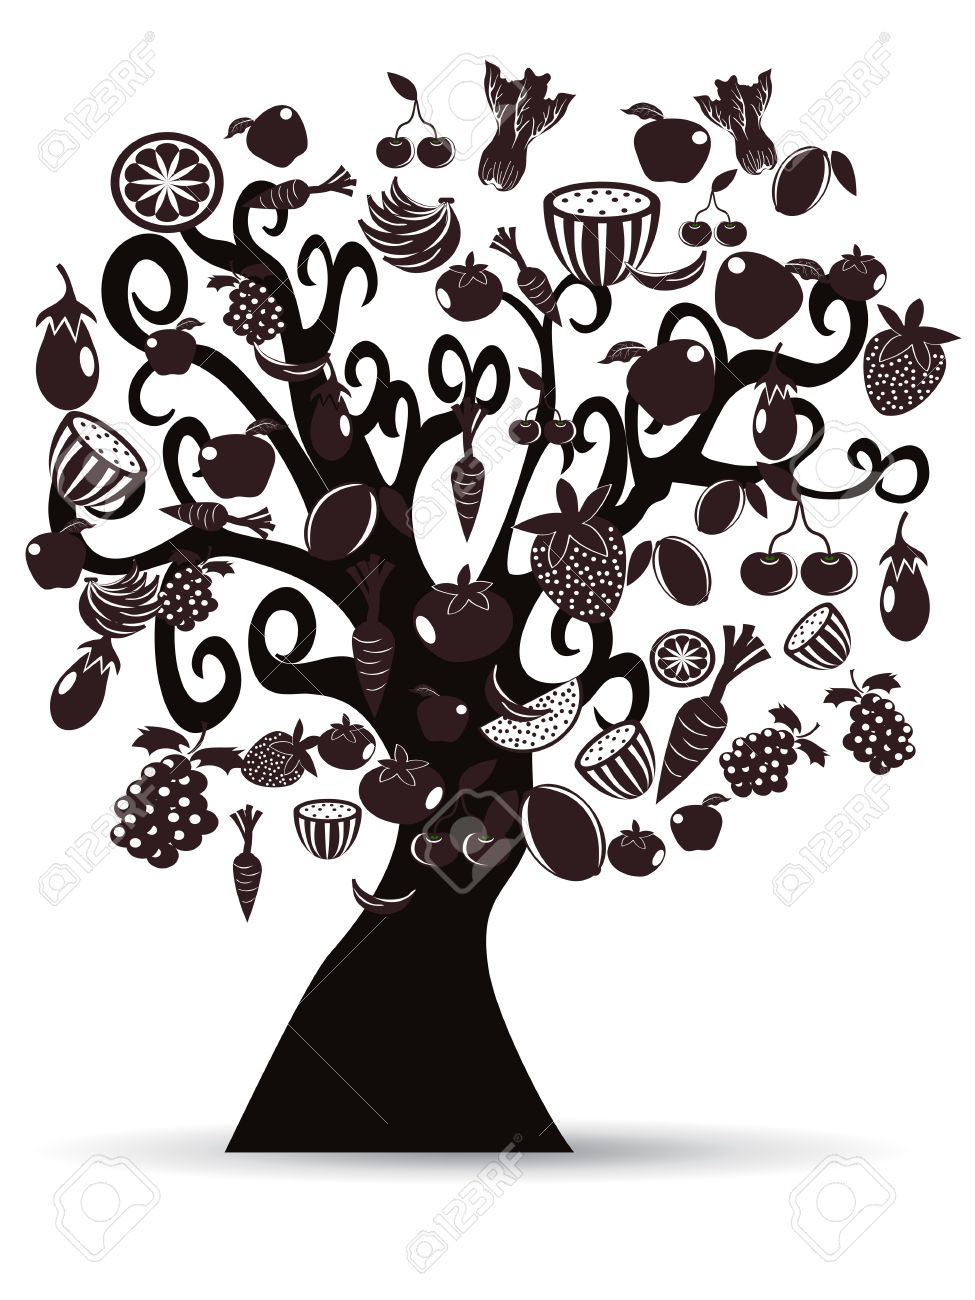 Food from trees clipart free stock Food from trees clipart - ClipartFest free stock